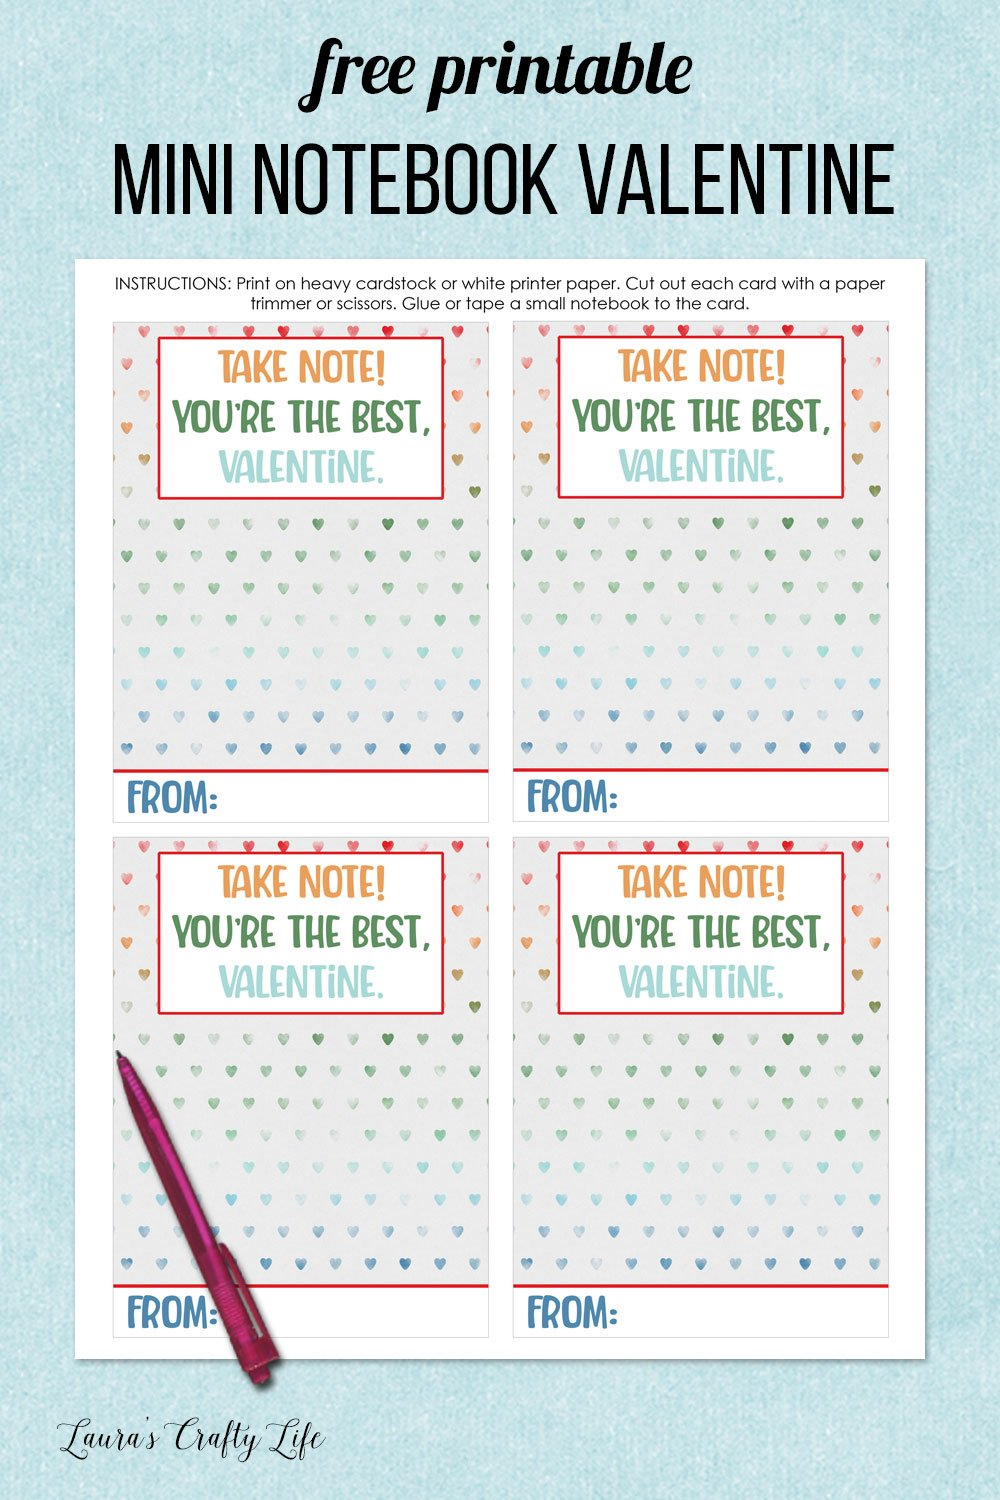 free printable mini notebook valentine